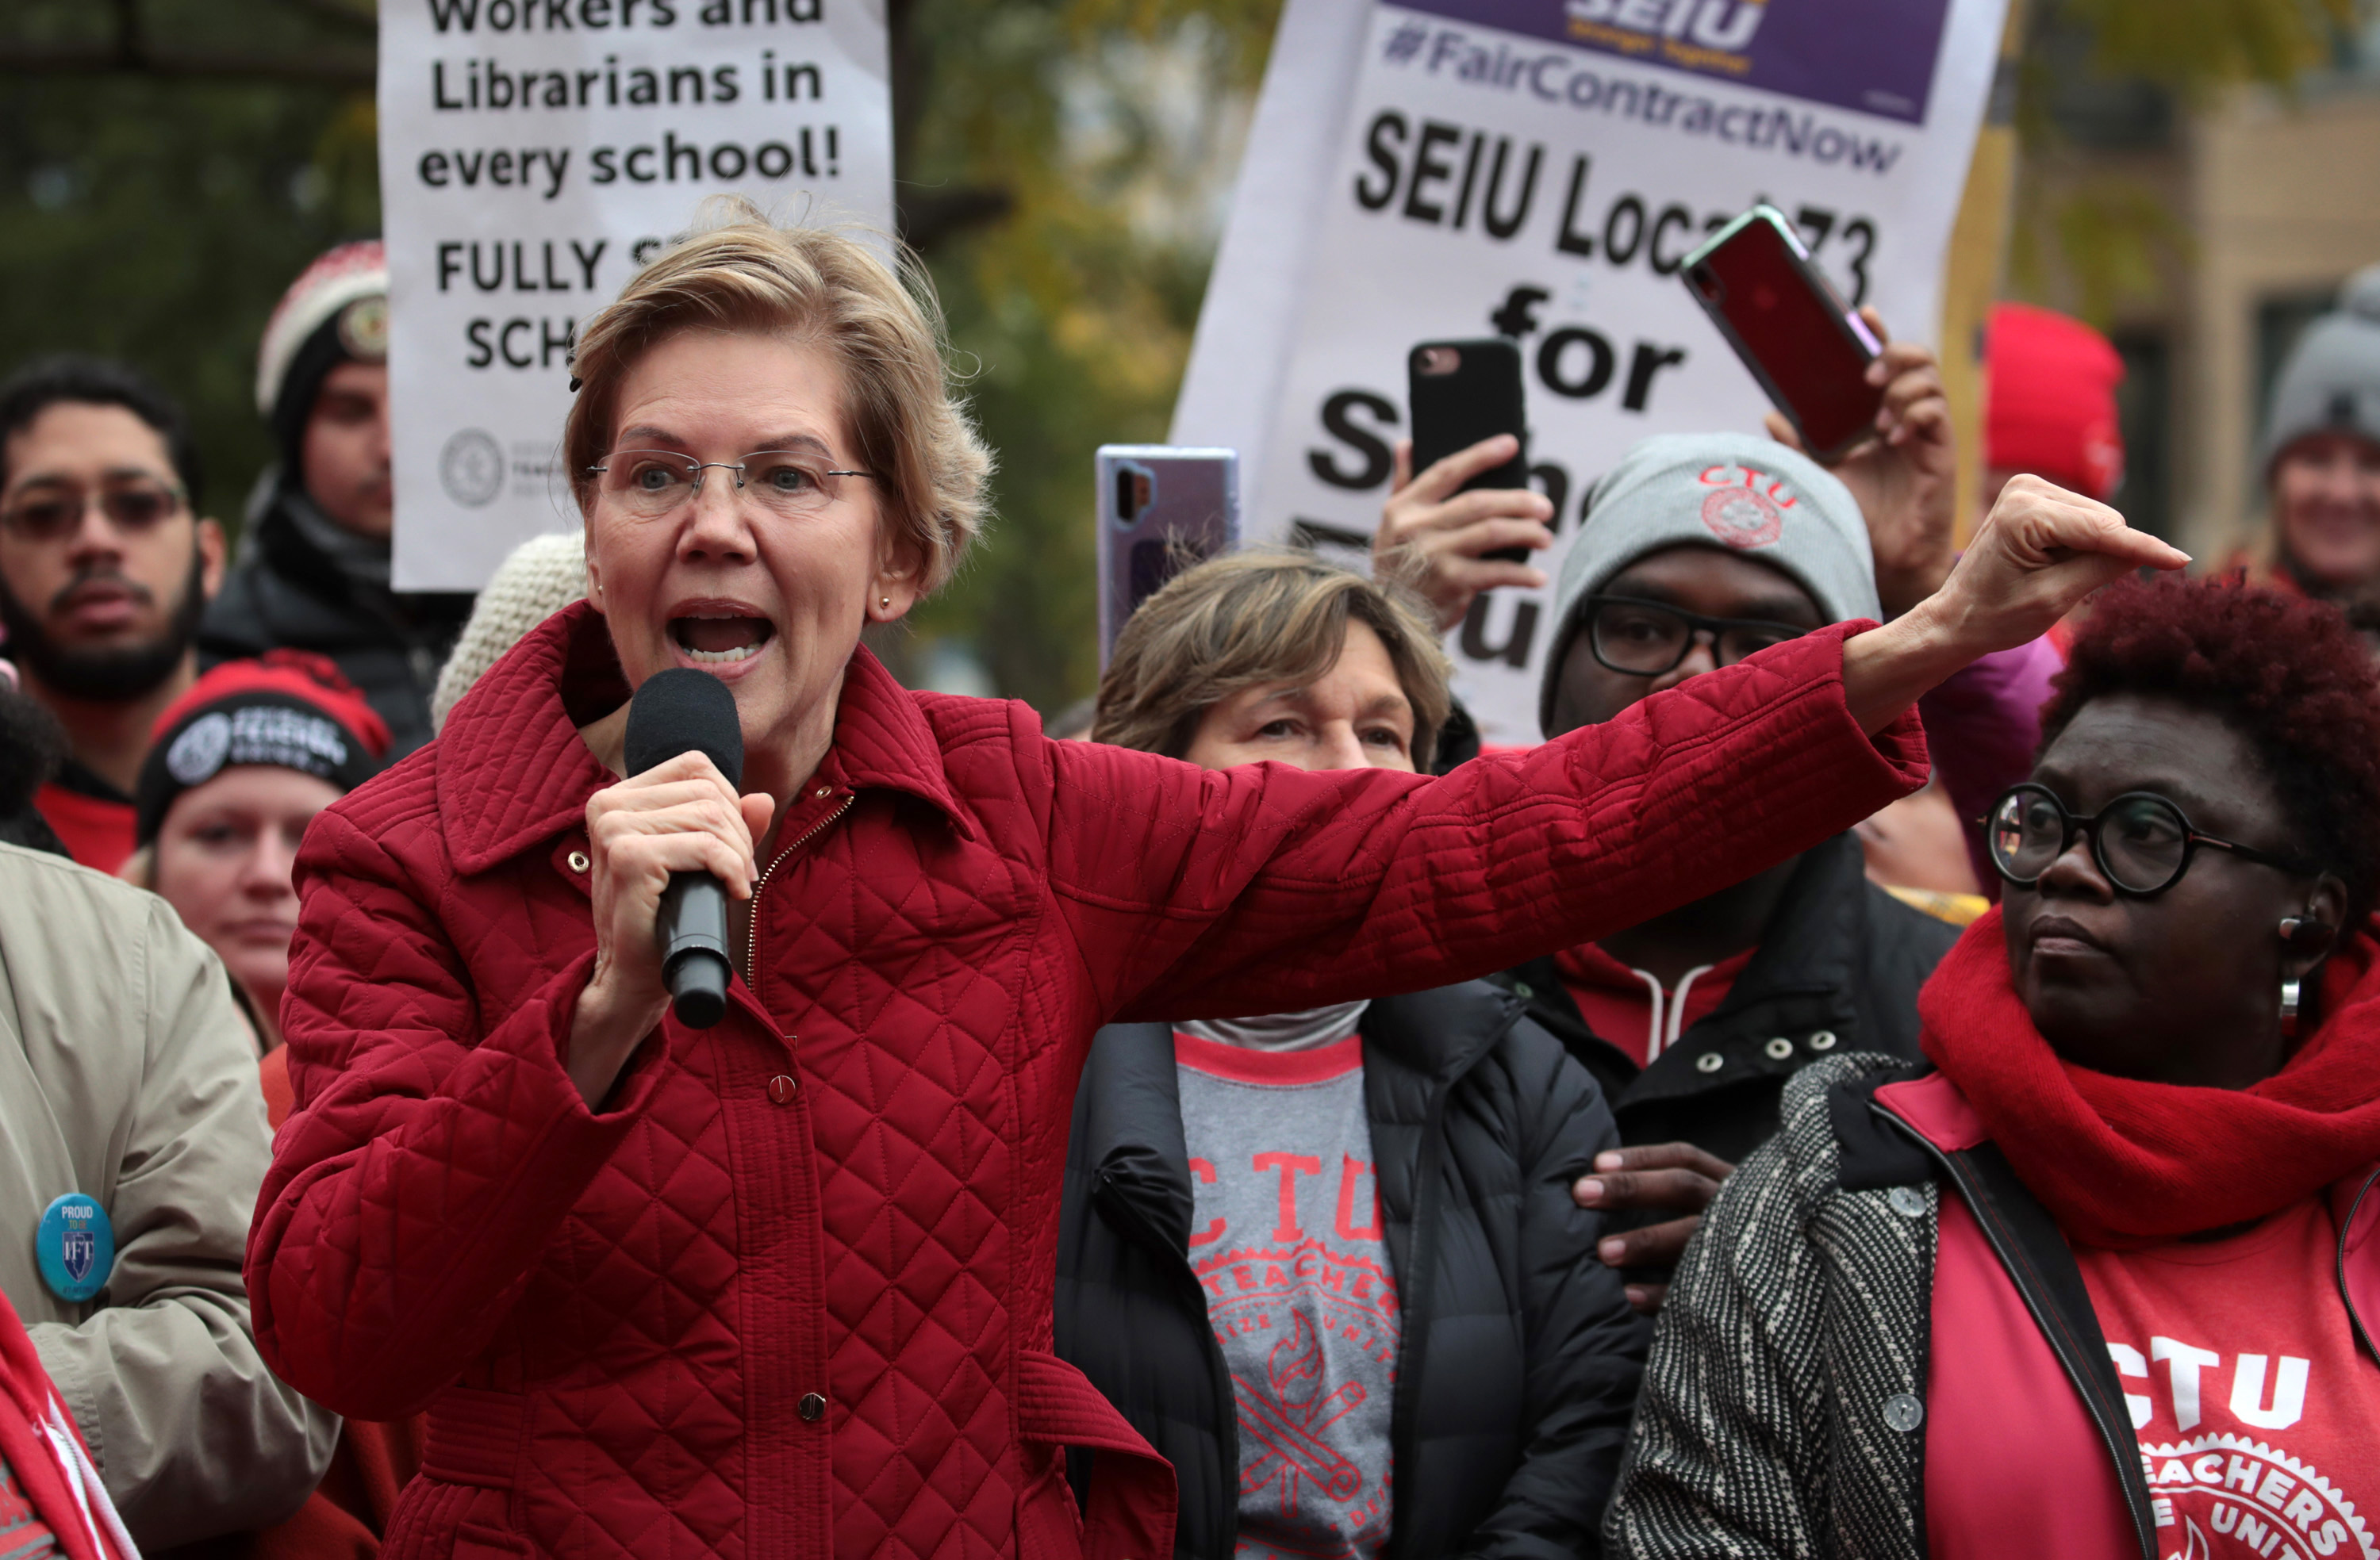 Elizabeth Warren marches with striking Chicago teachers, a day after releasing new K-12 education plan